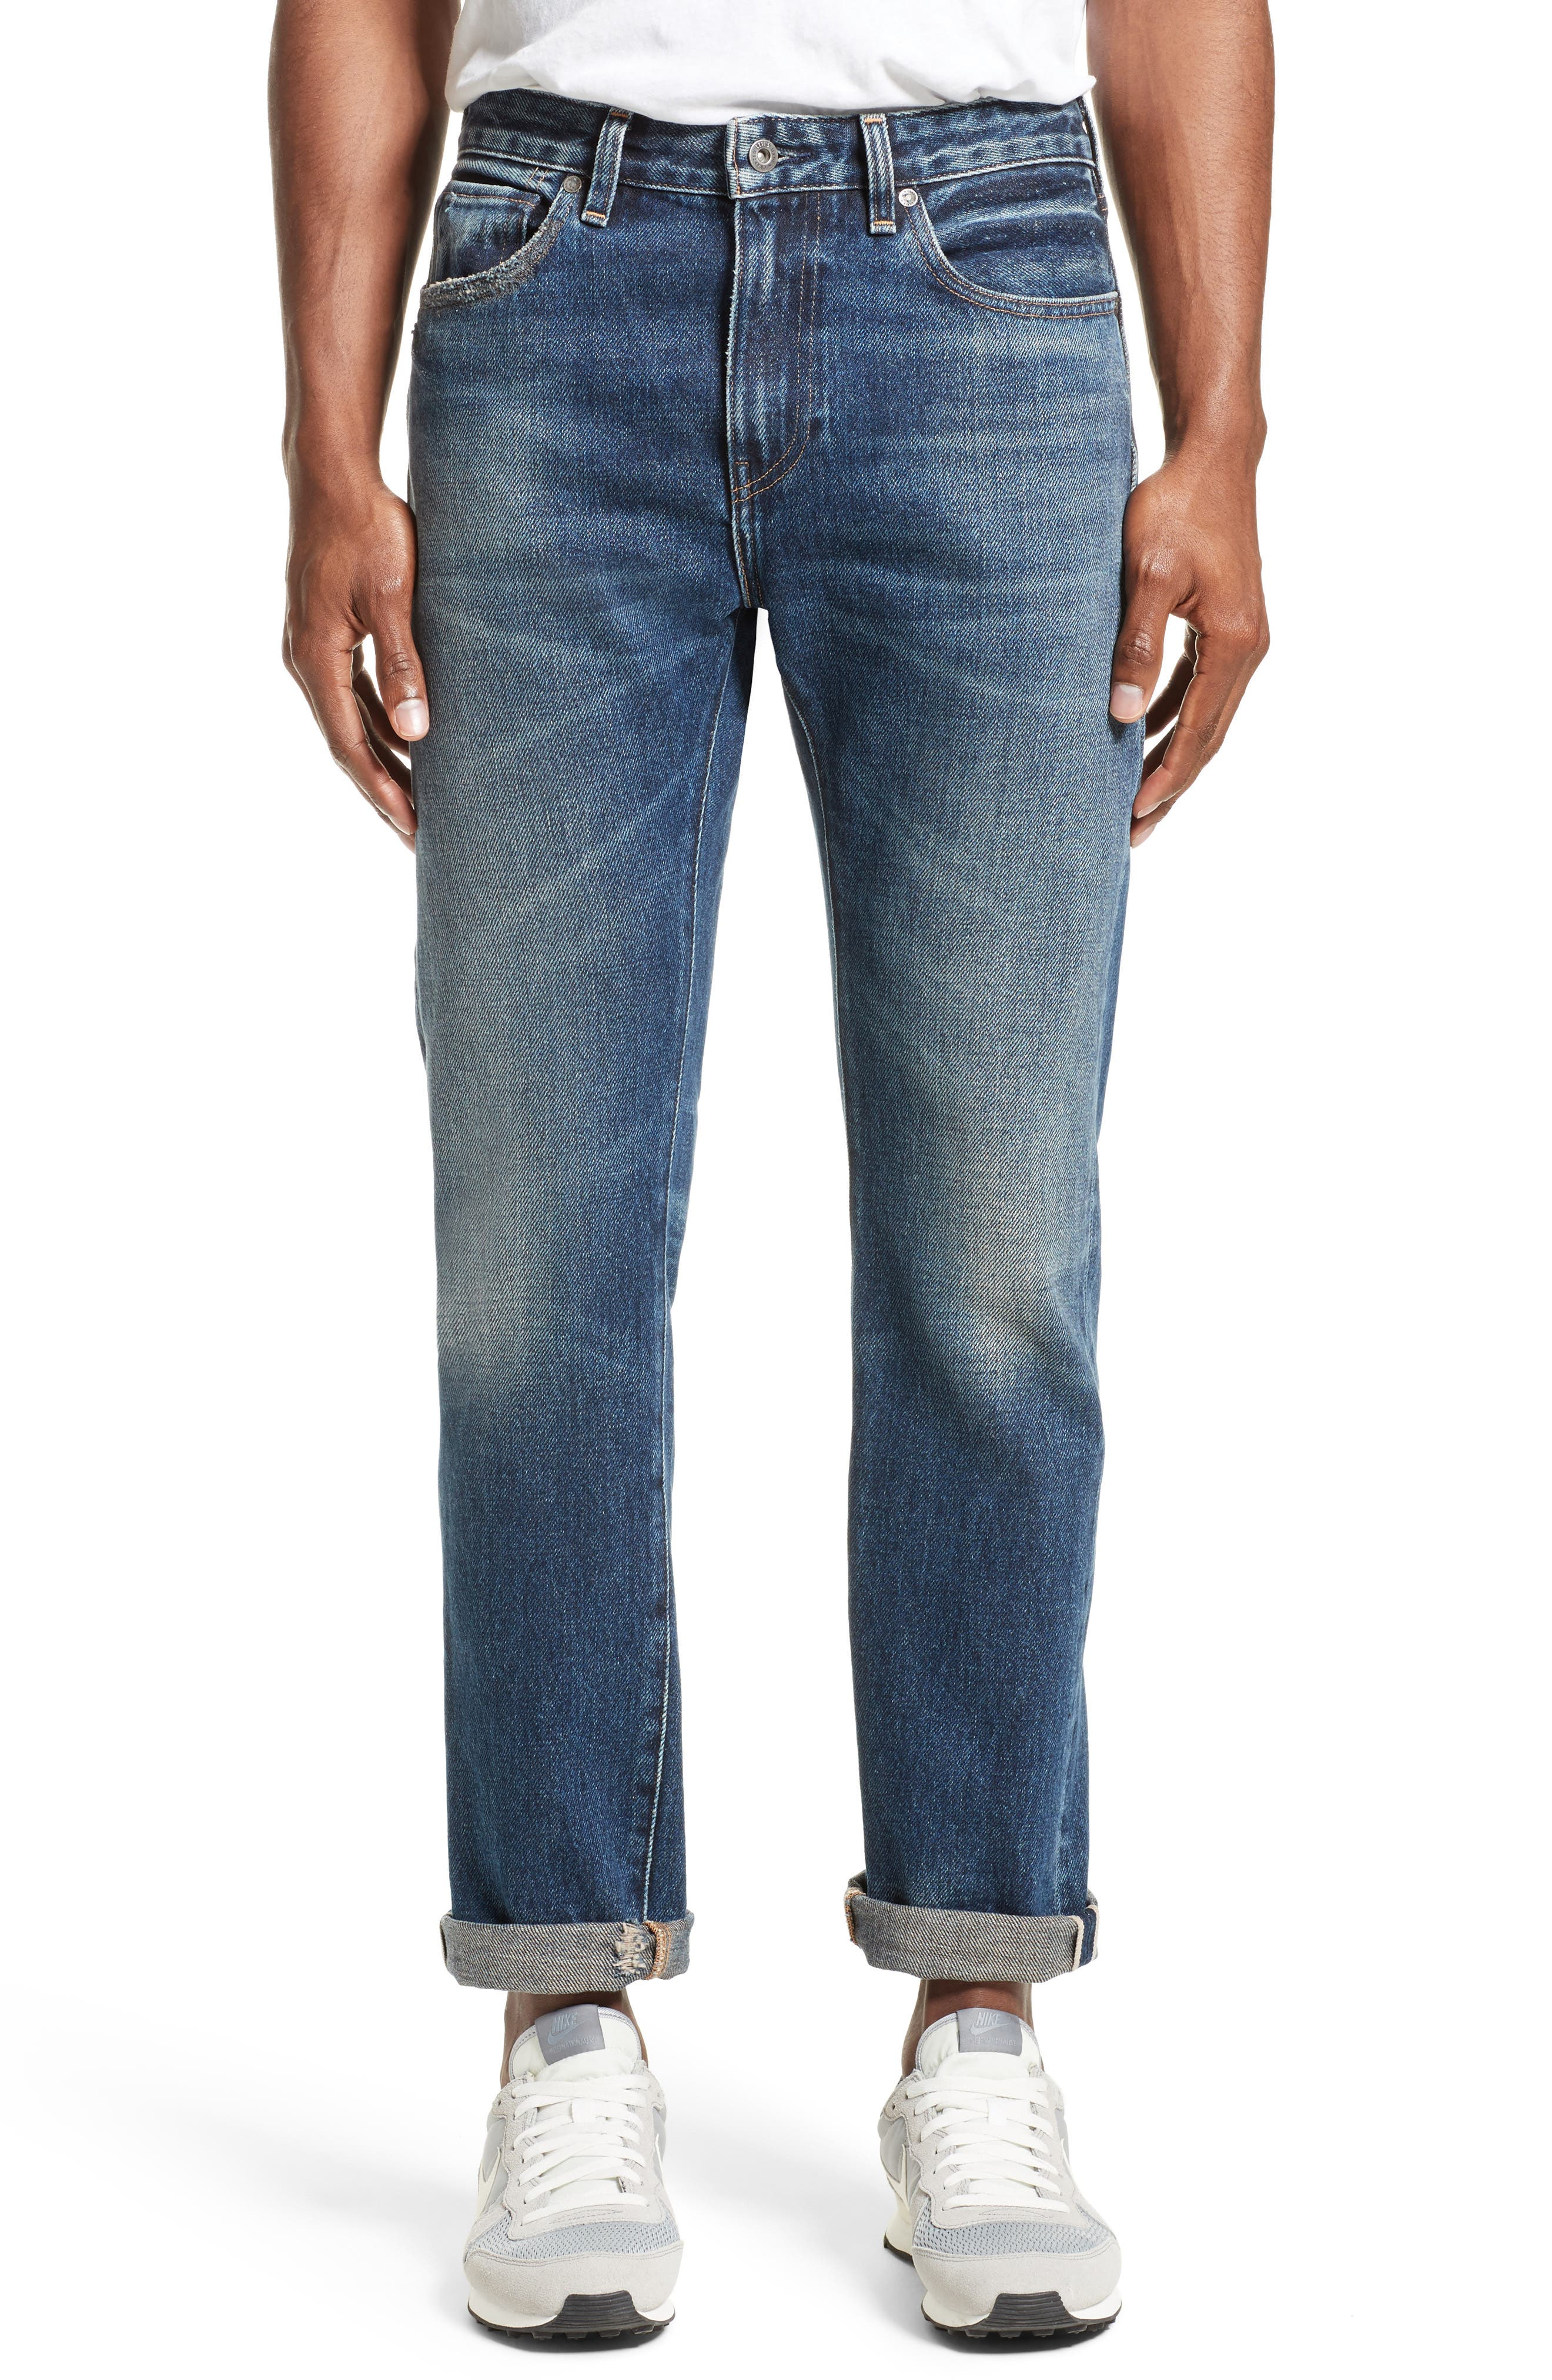 Alternate Image 1 Selected - Levi's® Made & Crafted™ Tack Slim Fit Jeans